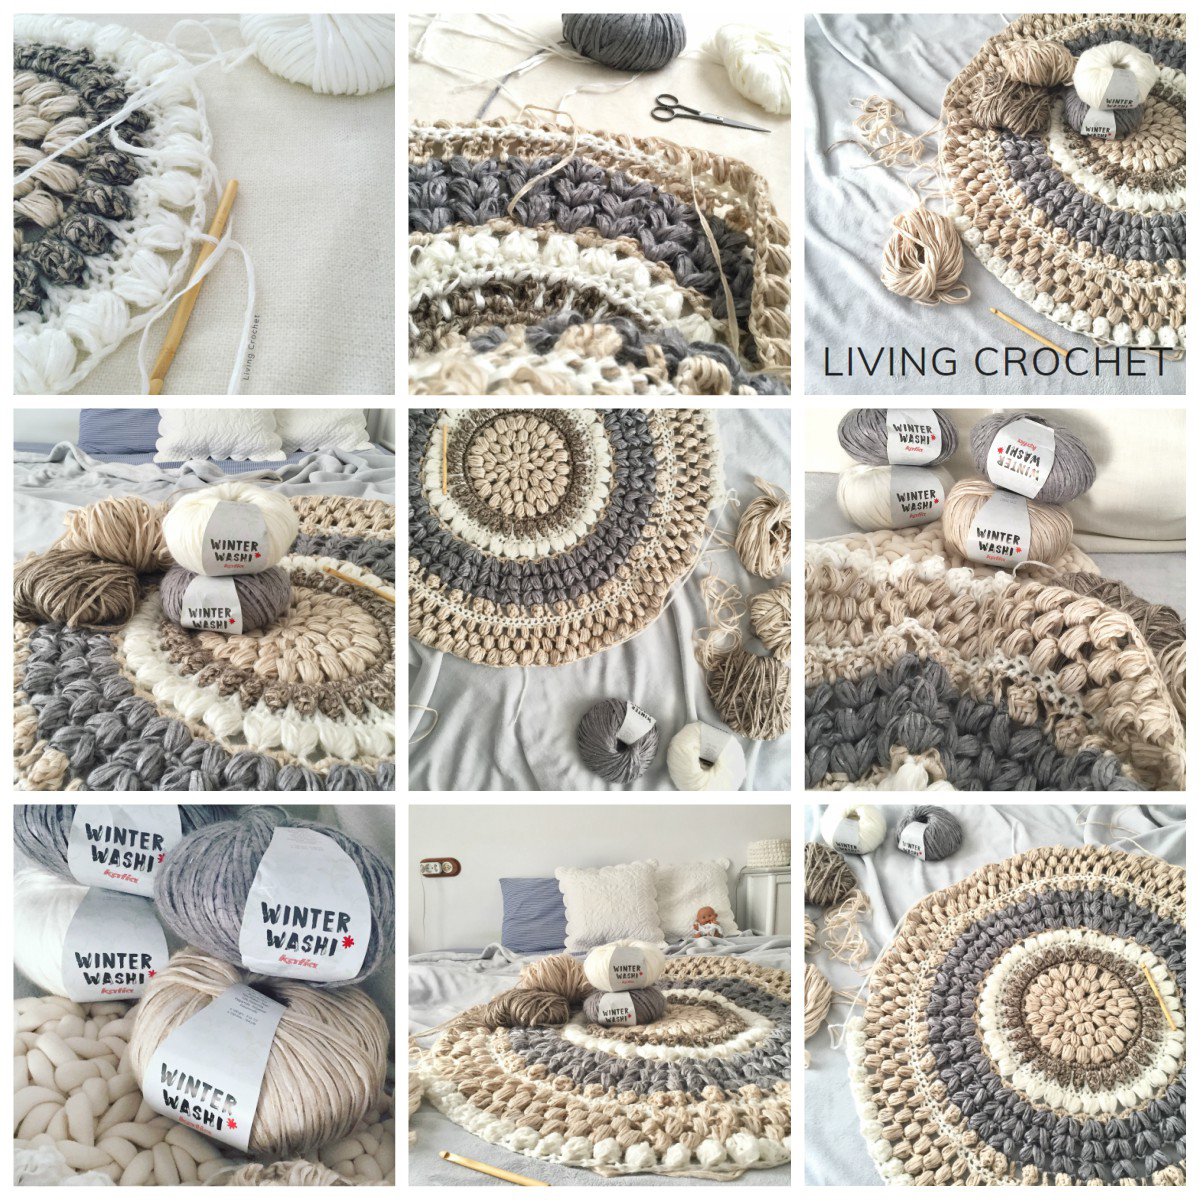 Tappeto All'uncinetto Schemi Living Crochet E Come Realizzare All Uncinetto Un Tappeto Con